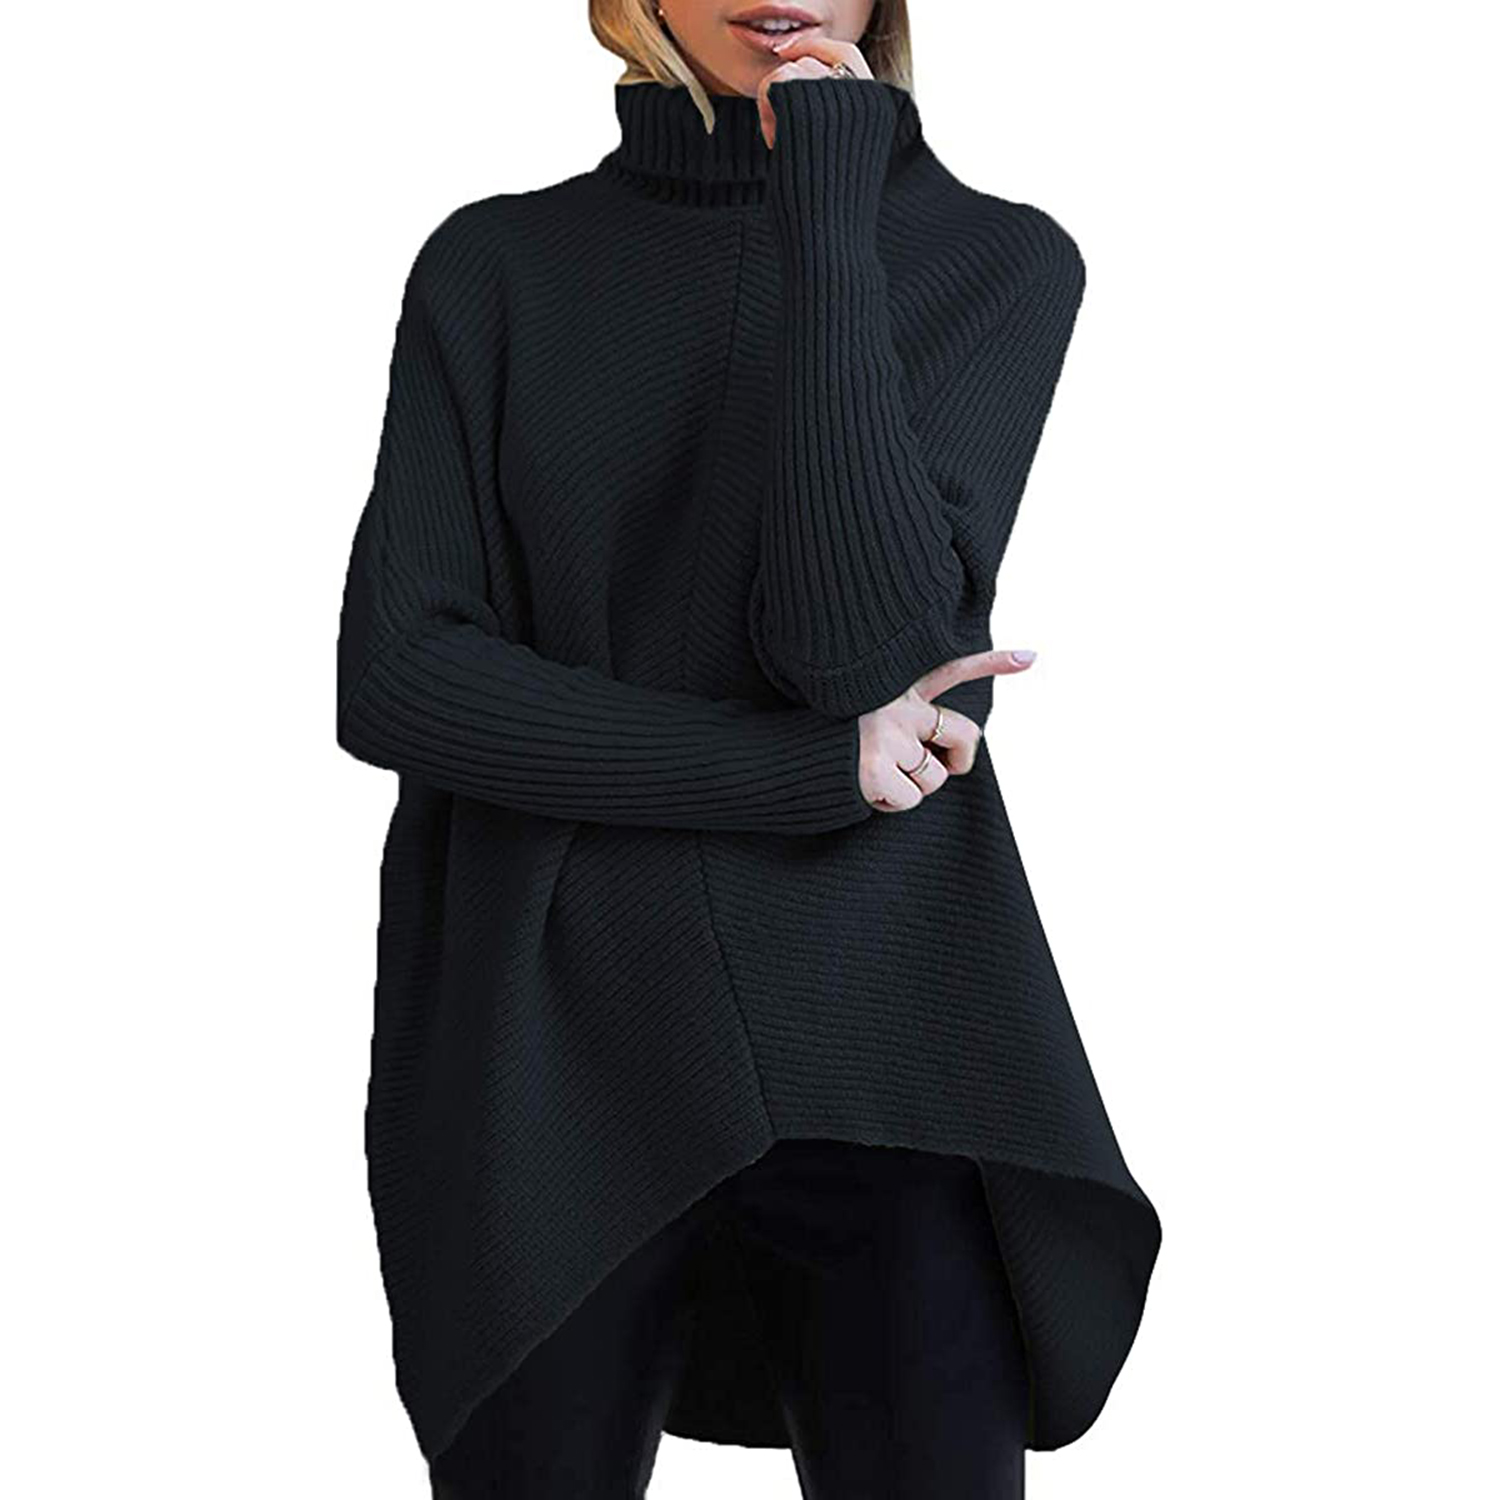 ANRABESS Womens Turtleneck Long Batwing Sleeve